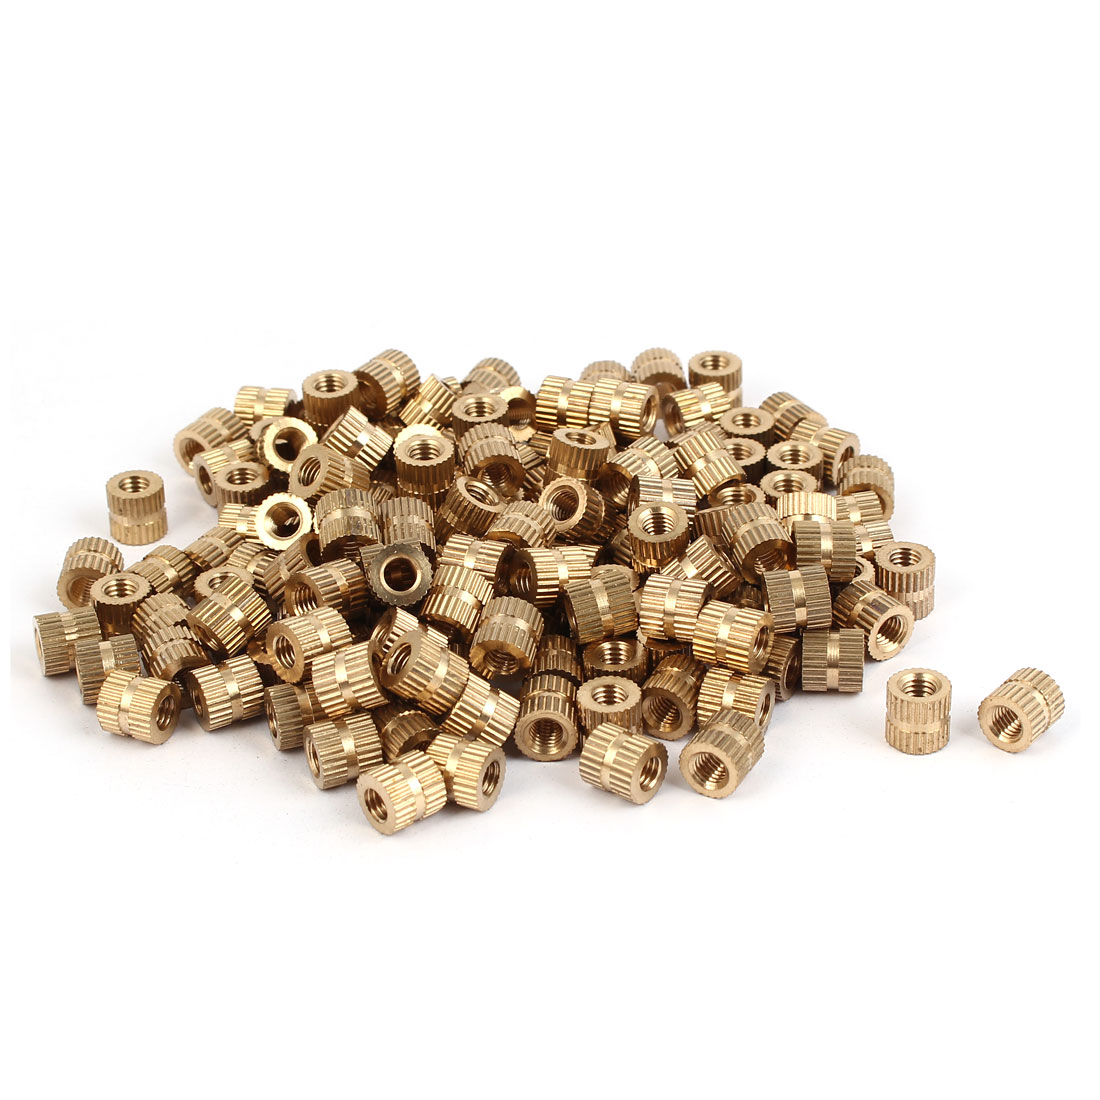 M5 x 8mm Brass Cylinder Knurled Threaded Round Insert Embedded Nuts 200PCS